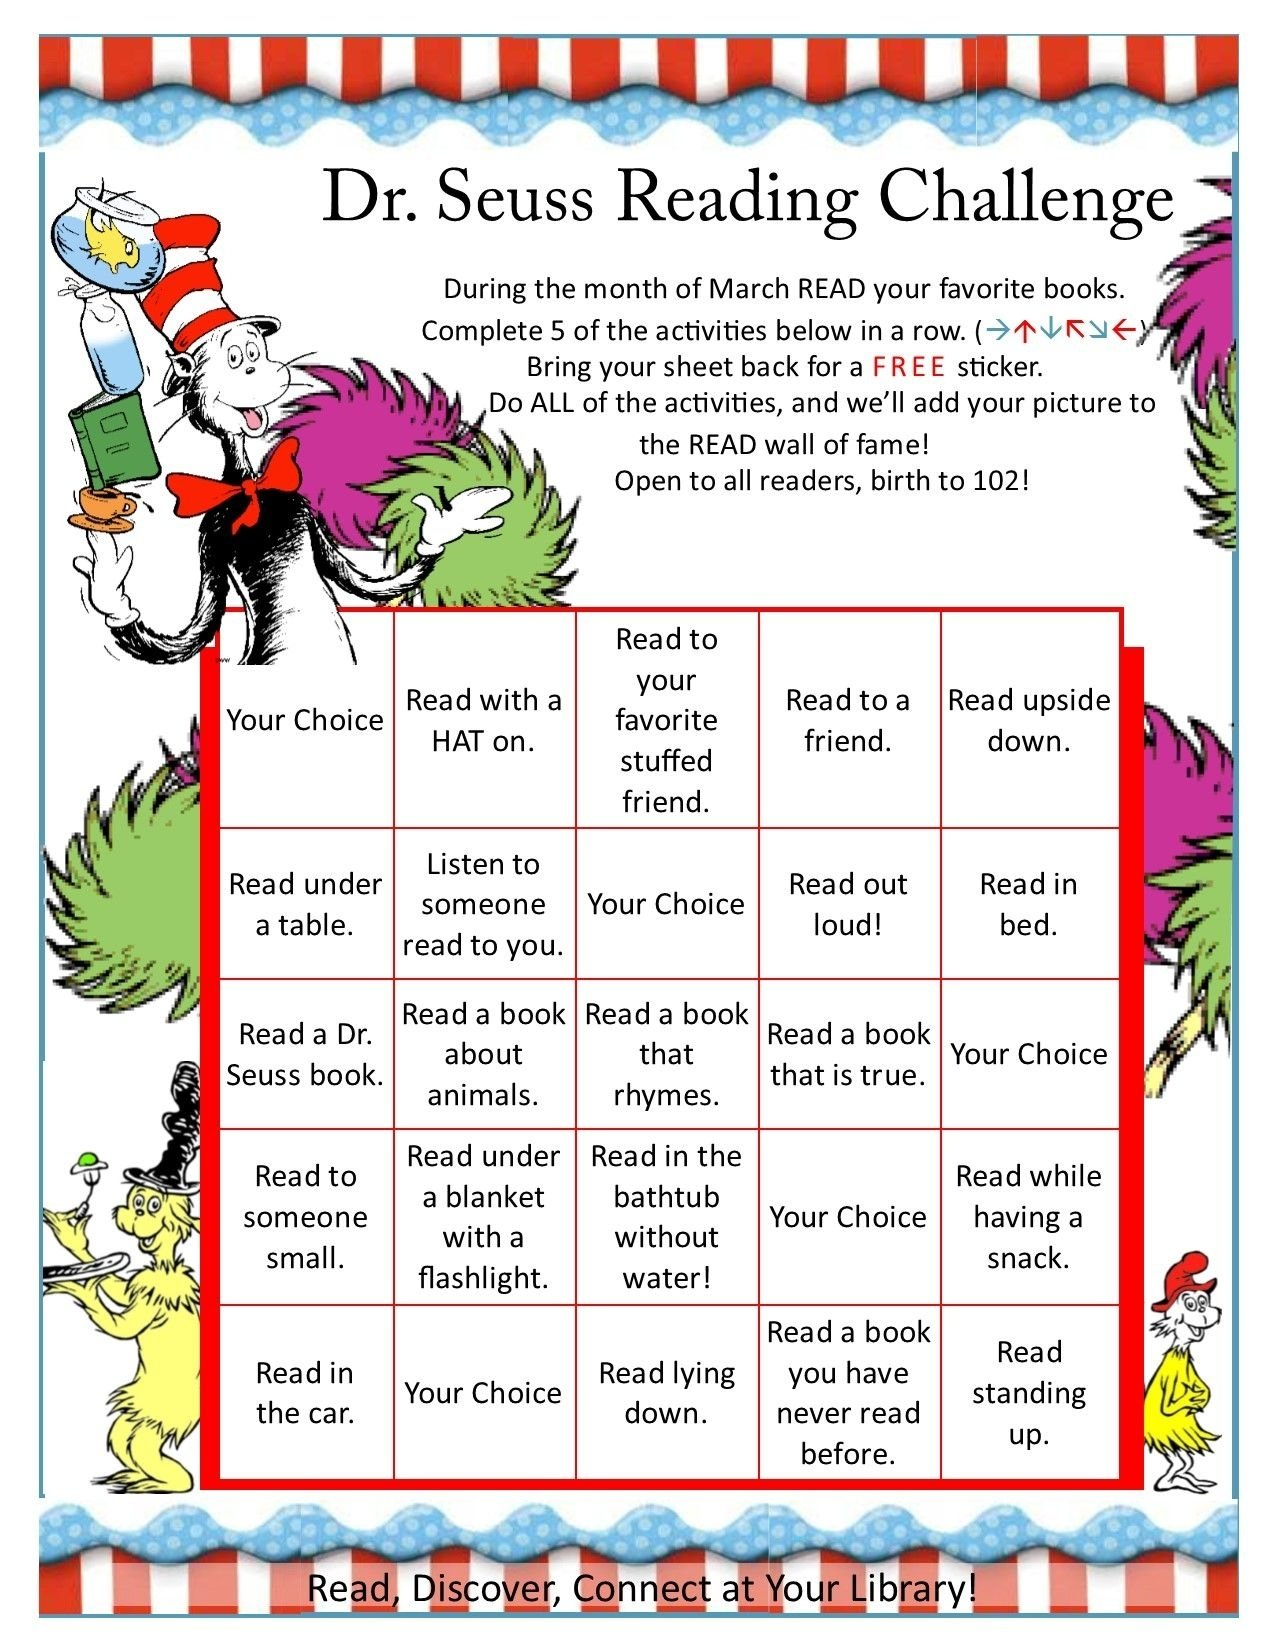 10 Stylish March Is Reading Month Ideas dr seuss reading challenge seuss pinterest reading challenge 2020